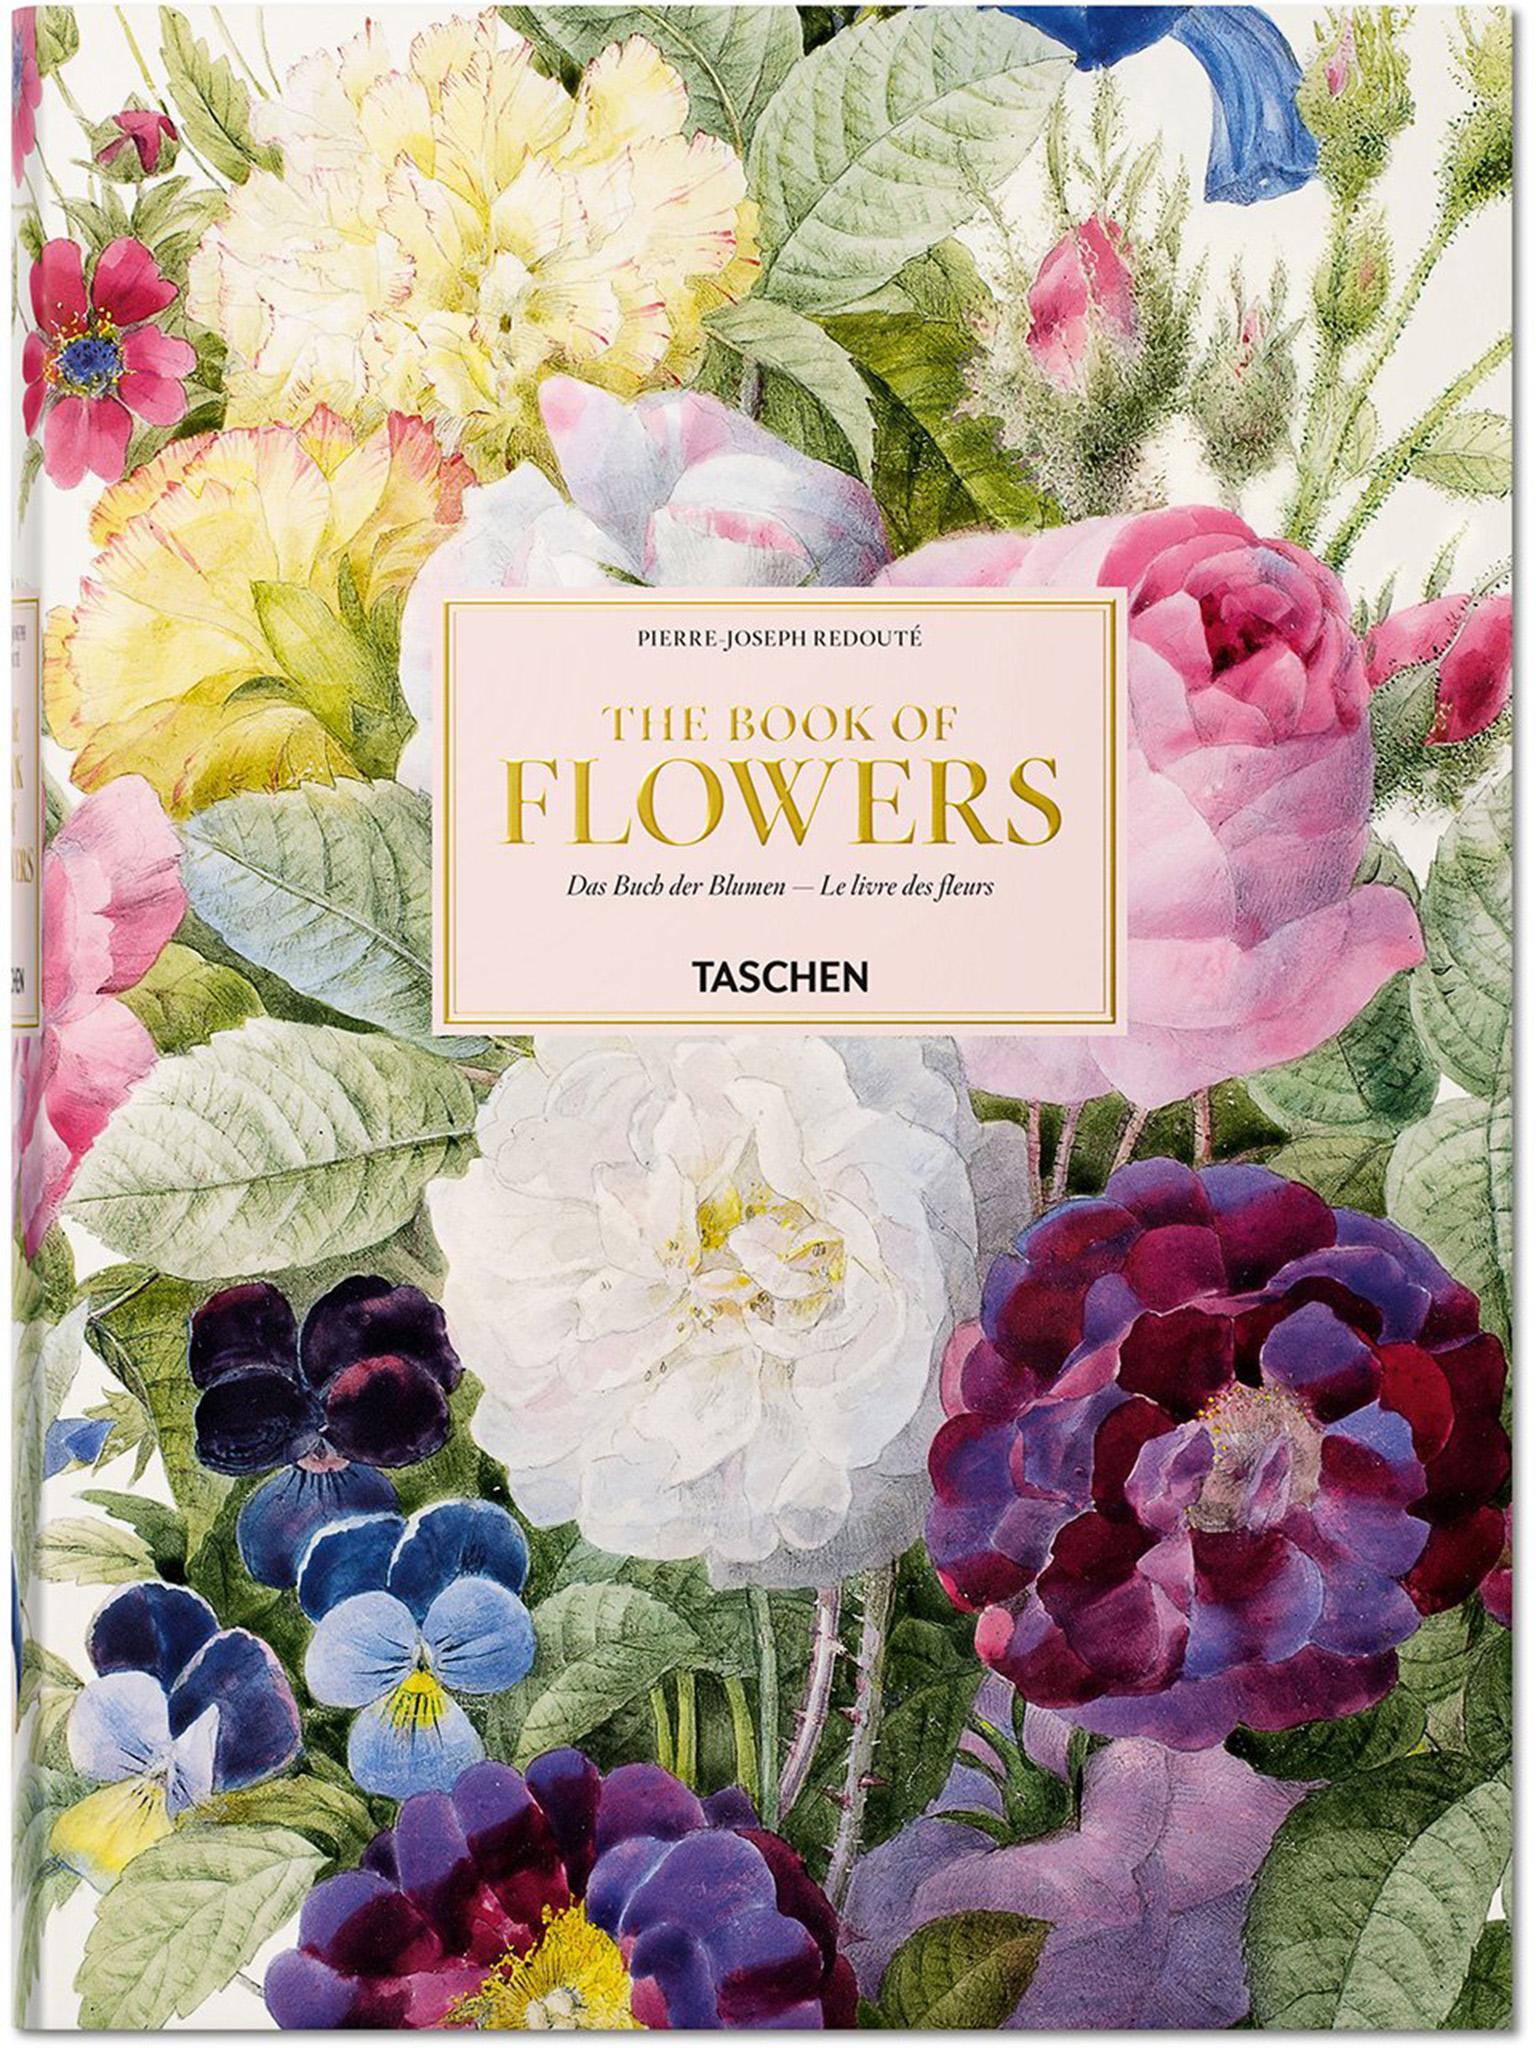 Pierre joseph redout the book of flowers displays the finest the author h walter lack is a professor at the free university of berlin and former director of the berlin dahlem botanical gardens and botanical museum izmirmasajfo